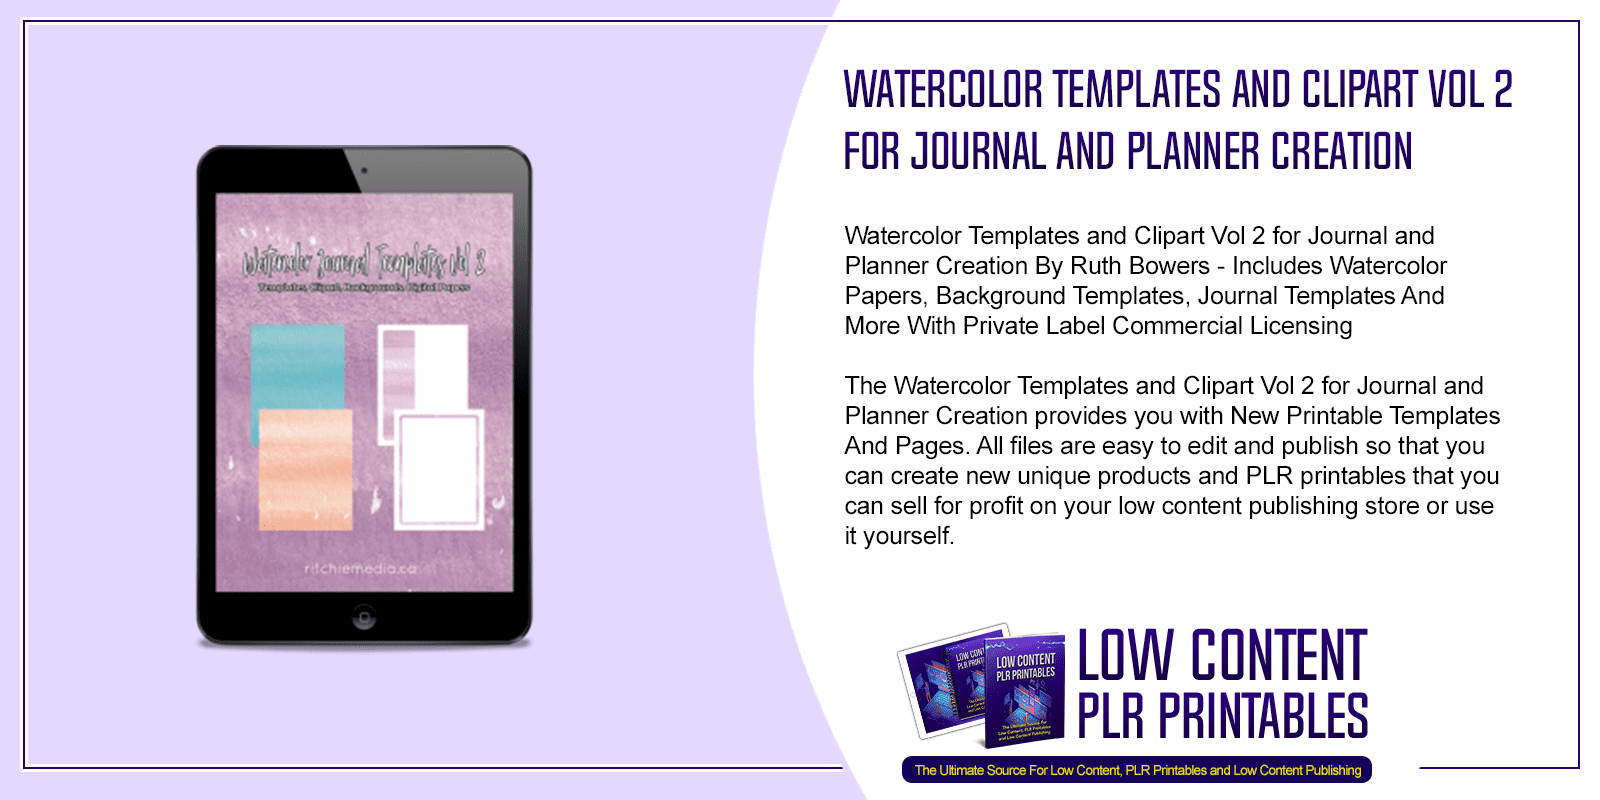 Watercolor Templates and Clipart Vol 2 for Journal and Planner Creation